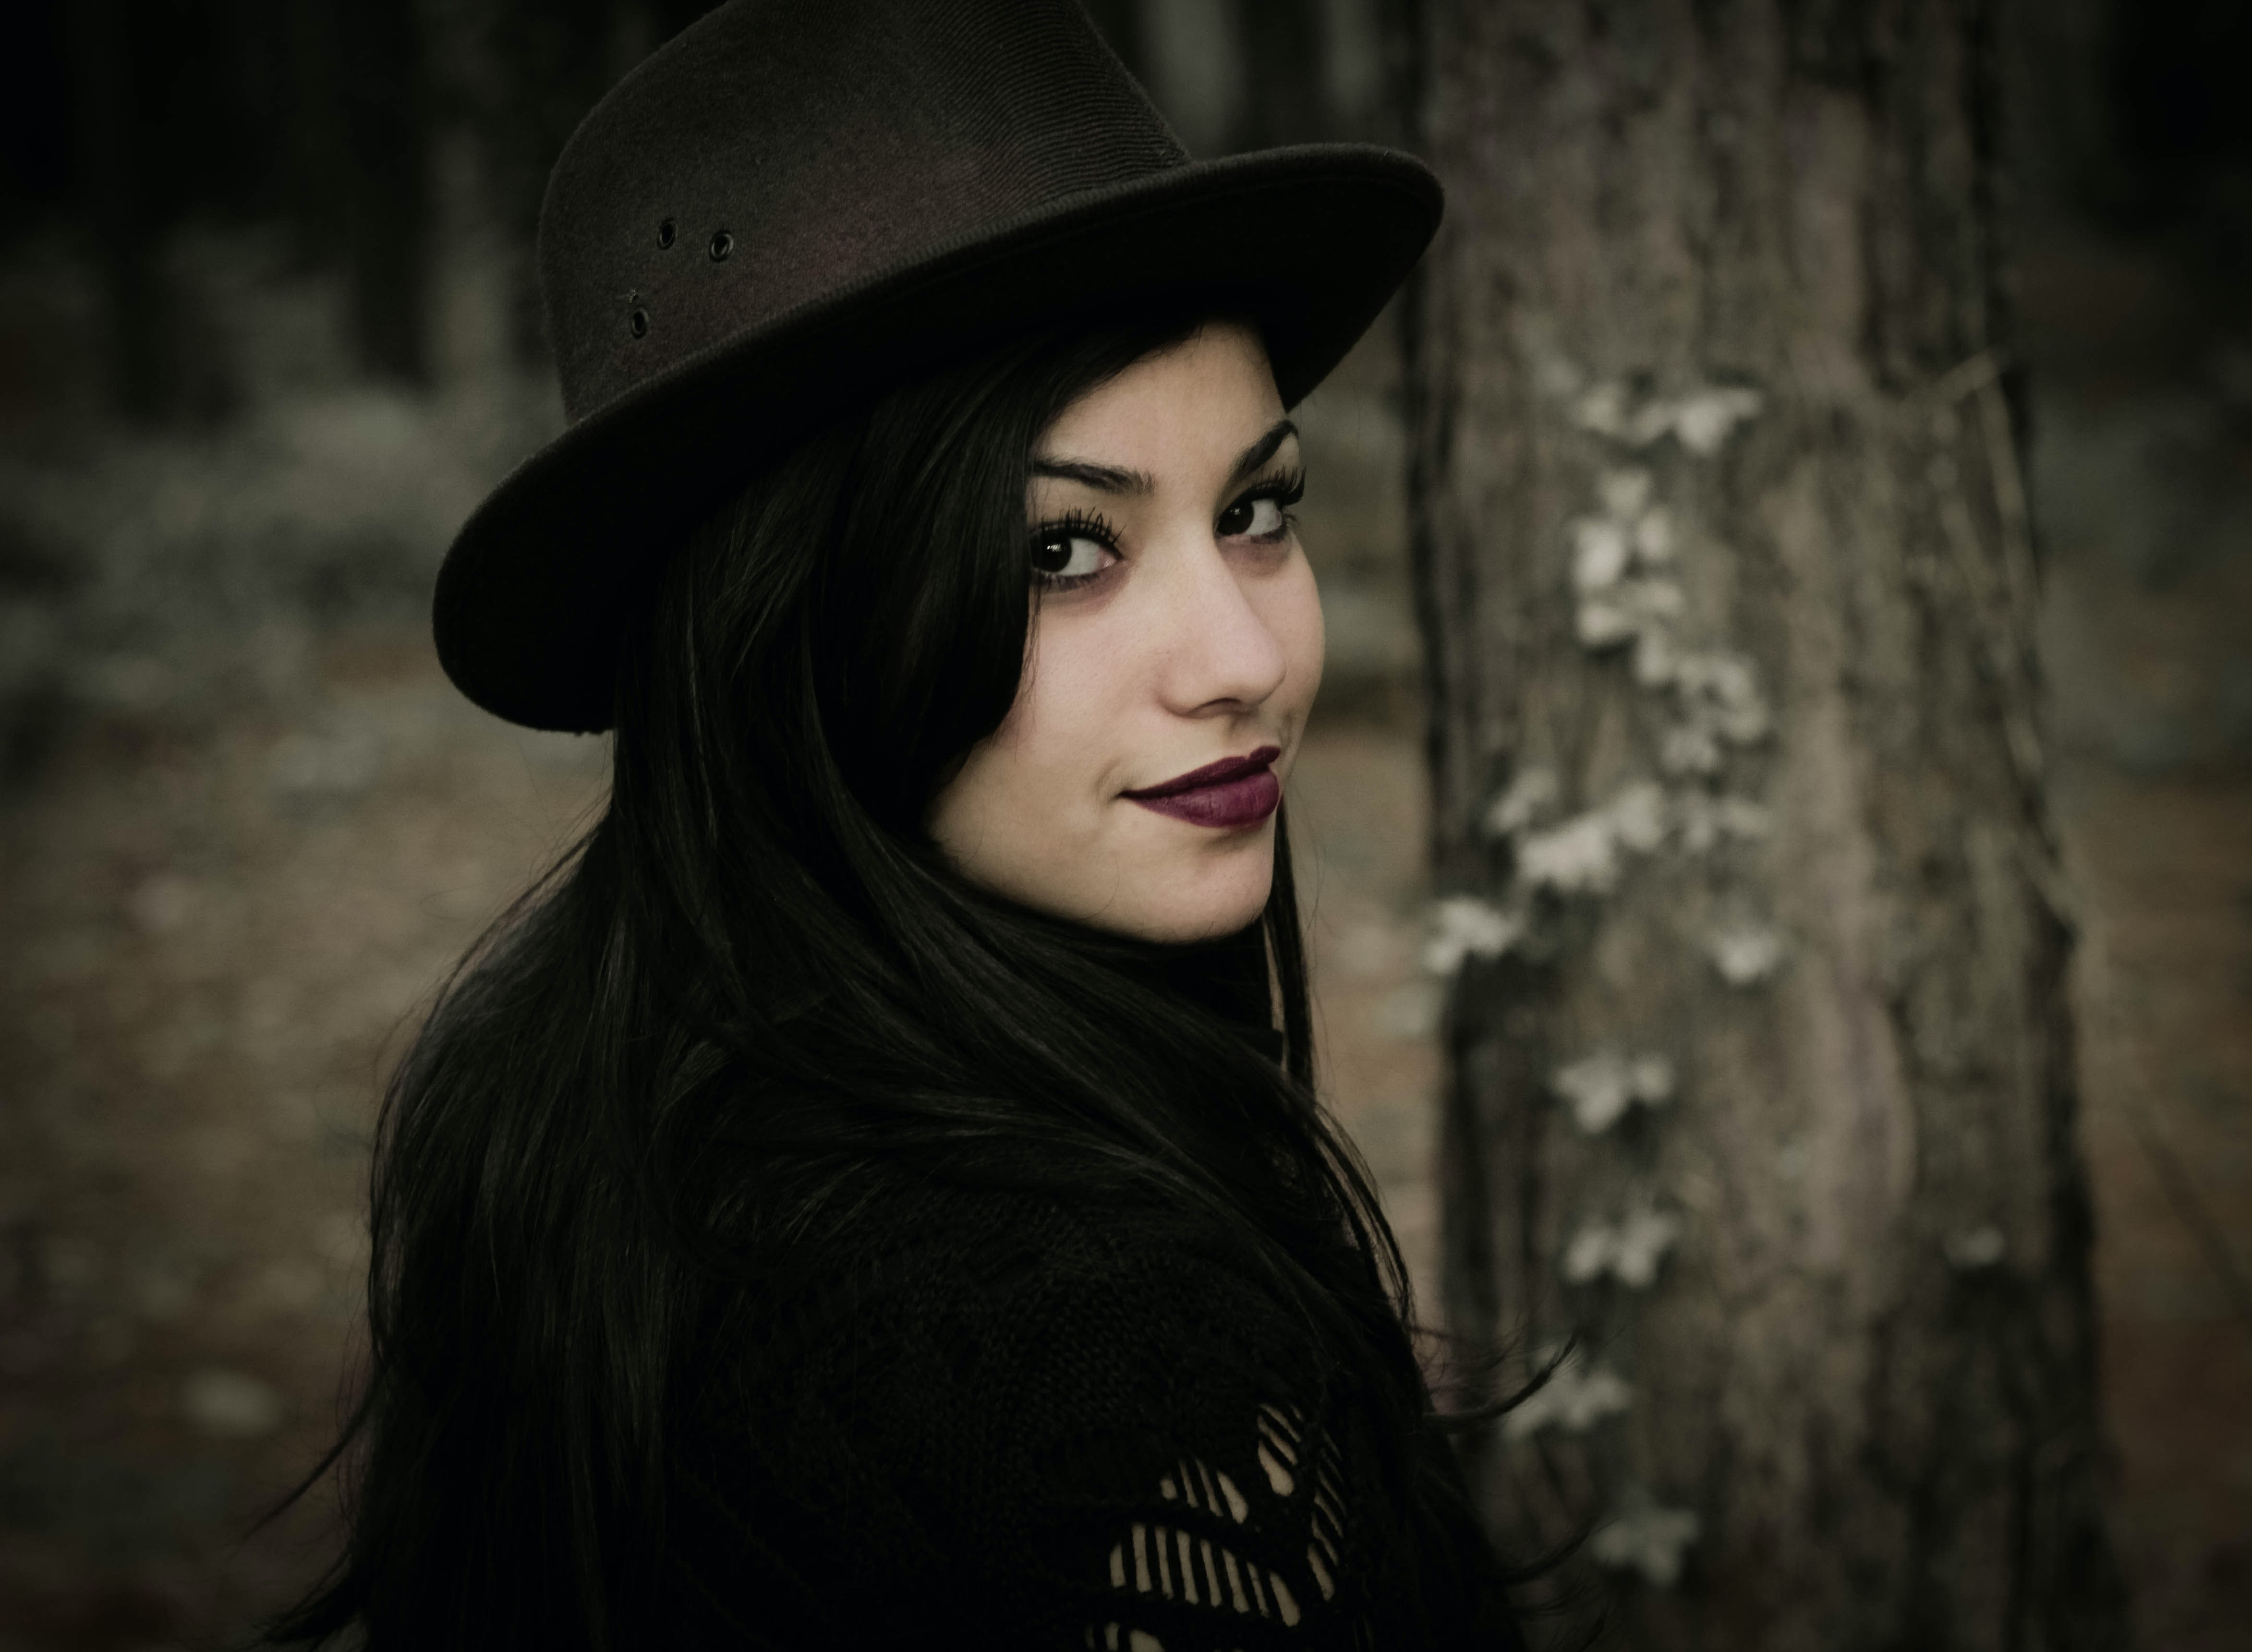 A dark-haired woman in a hat smiling near a tree